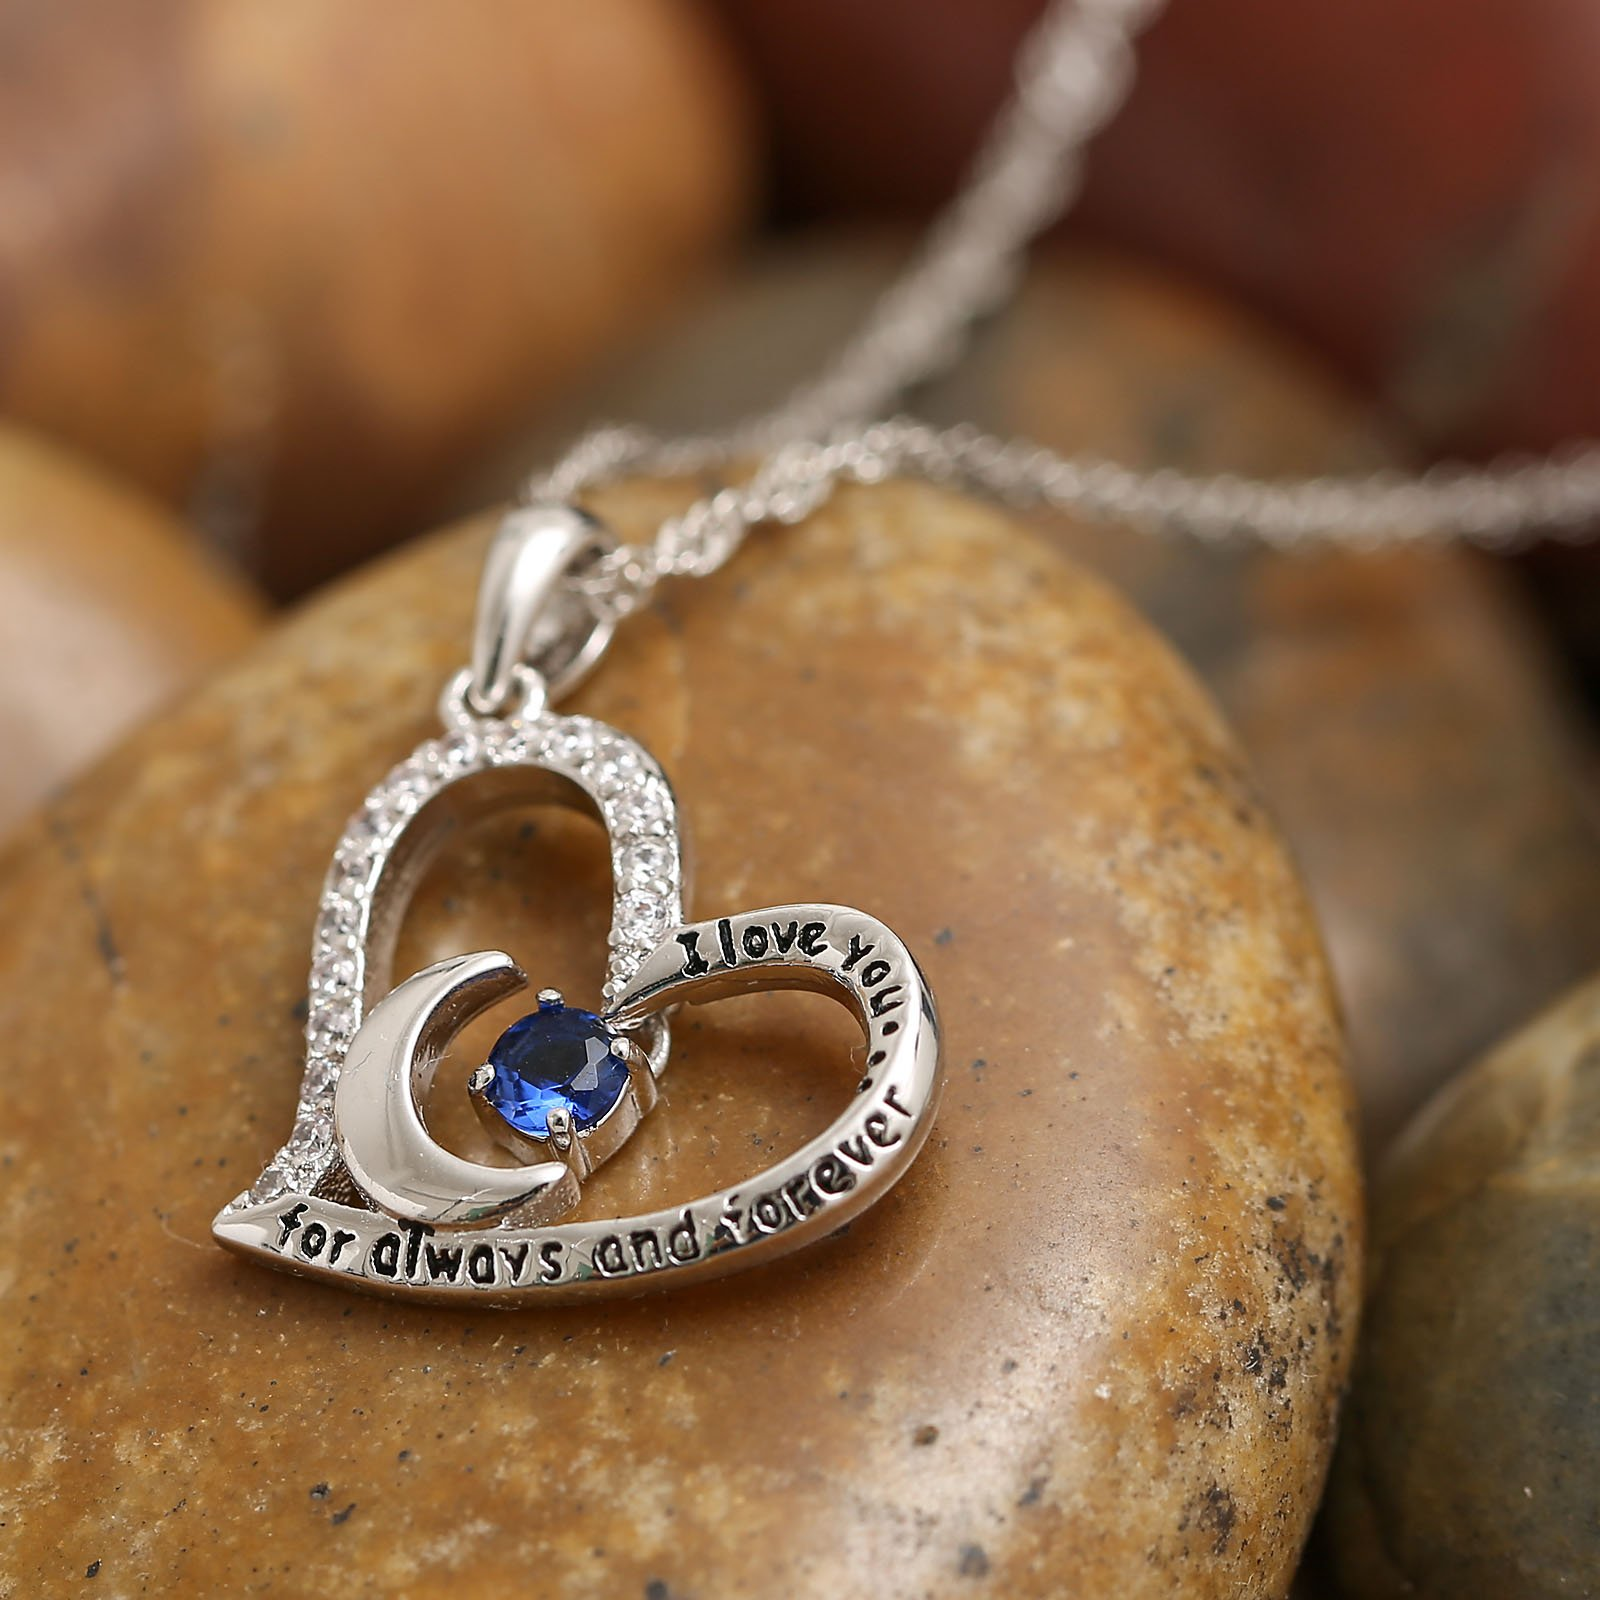 Valentine's Day Gift Fine Jewelry Gift Sterling Silver Heart Pendant Necklace Birthday Necklace I Love You For Always and Forever Dancing Birthstone (09-September-Sapphire) by Anna Crystal Jewelry (Image #3)